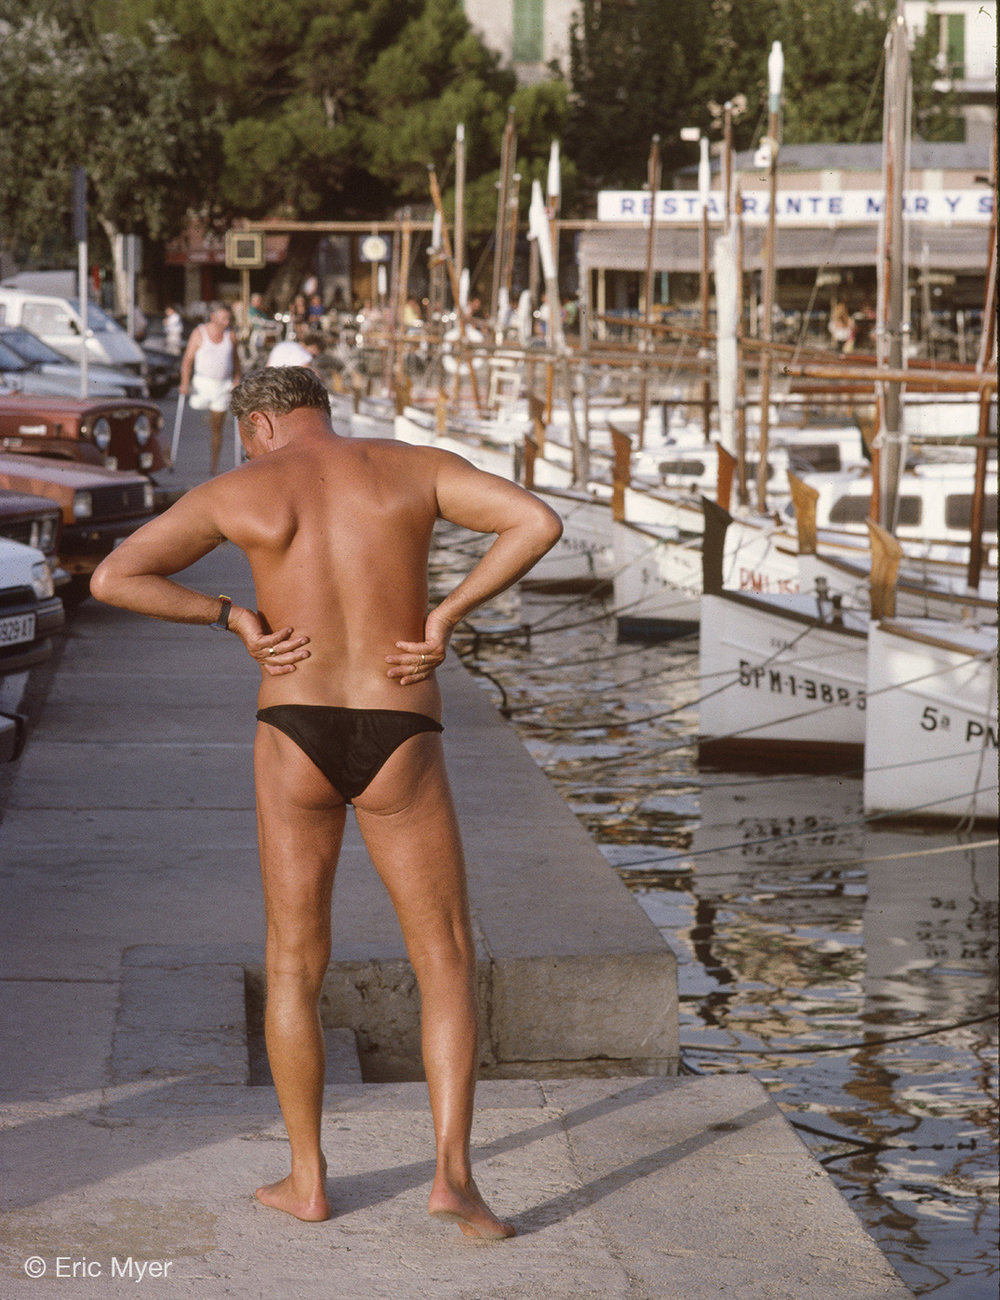 1988_October_Majorca_Spain_Speedo_Man_blog.jpg